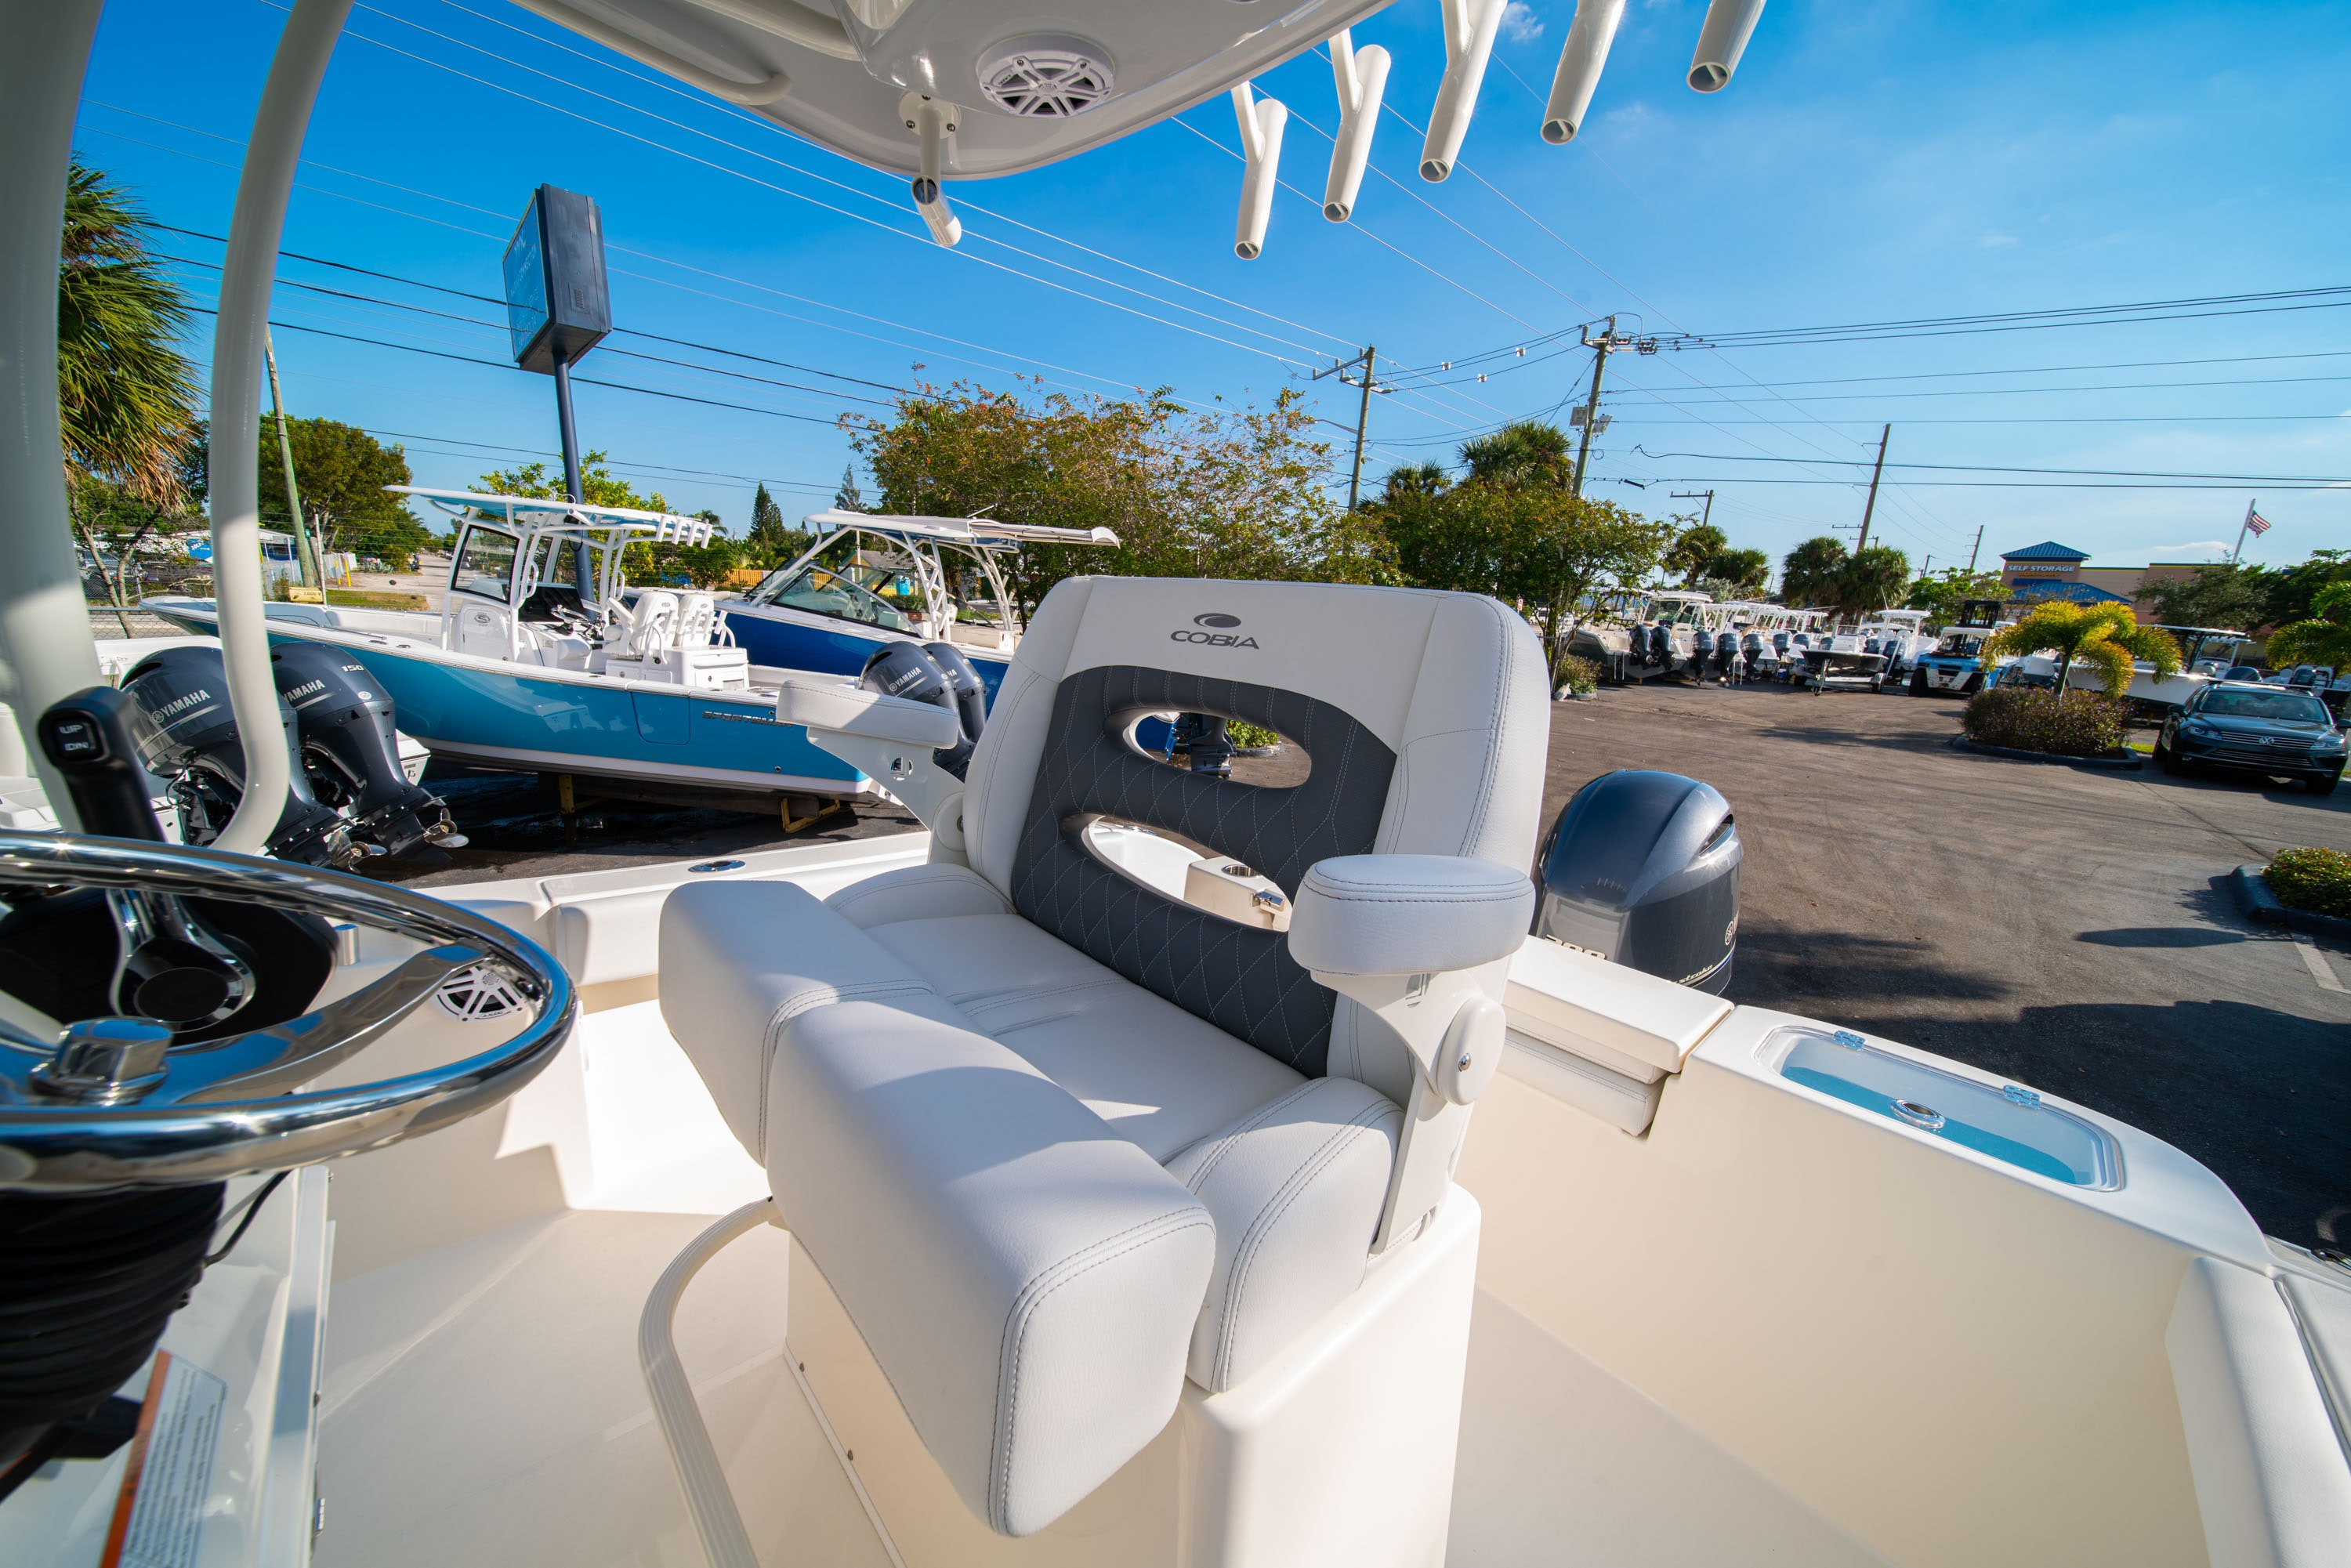 Thumbnail 29 for New 2020 Cobia 220 CC boat for sale in West Palm Beach, FL